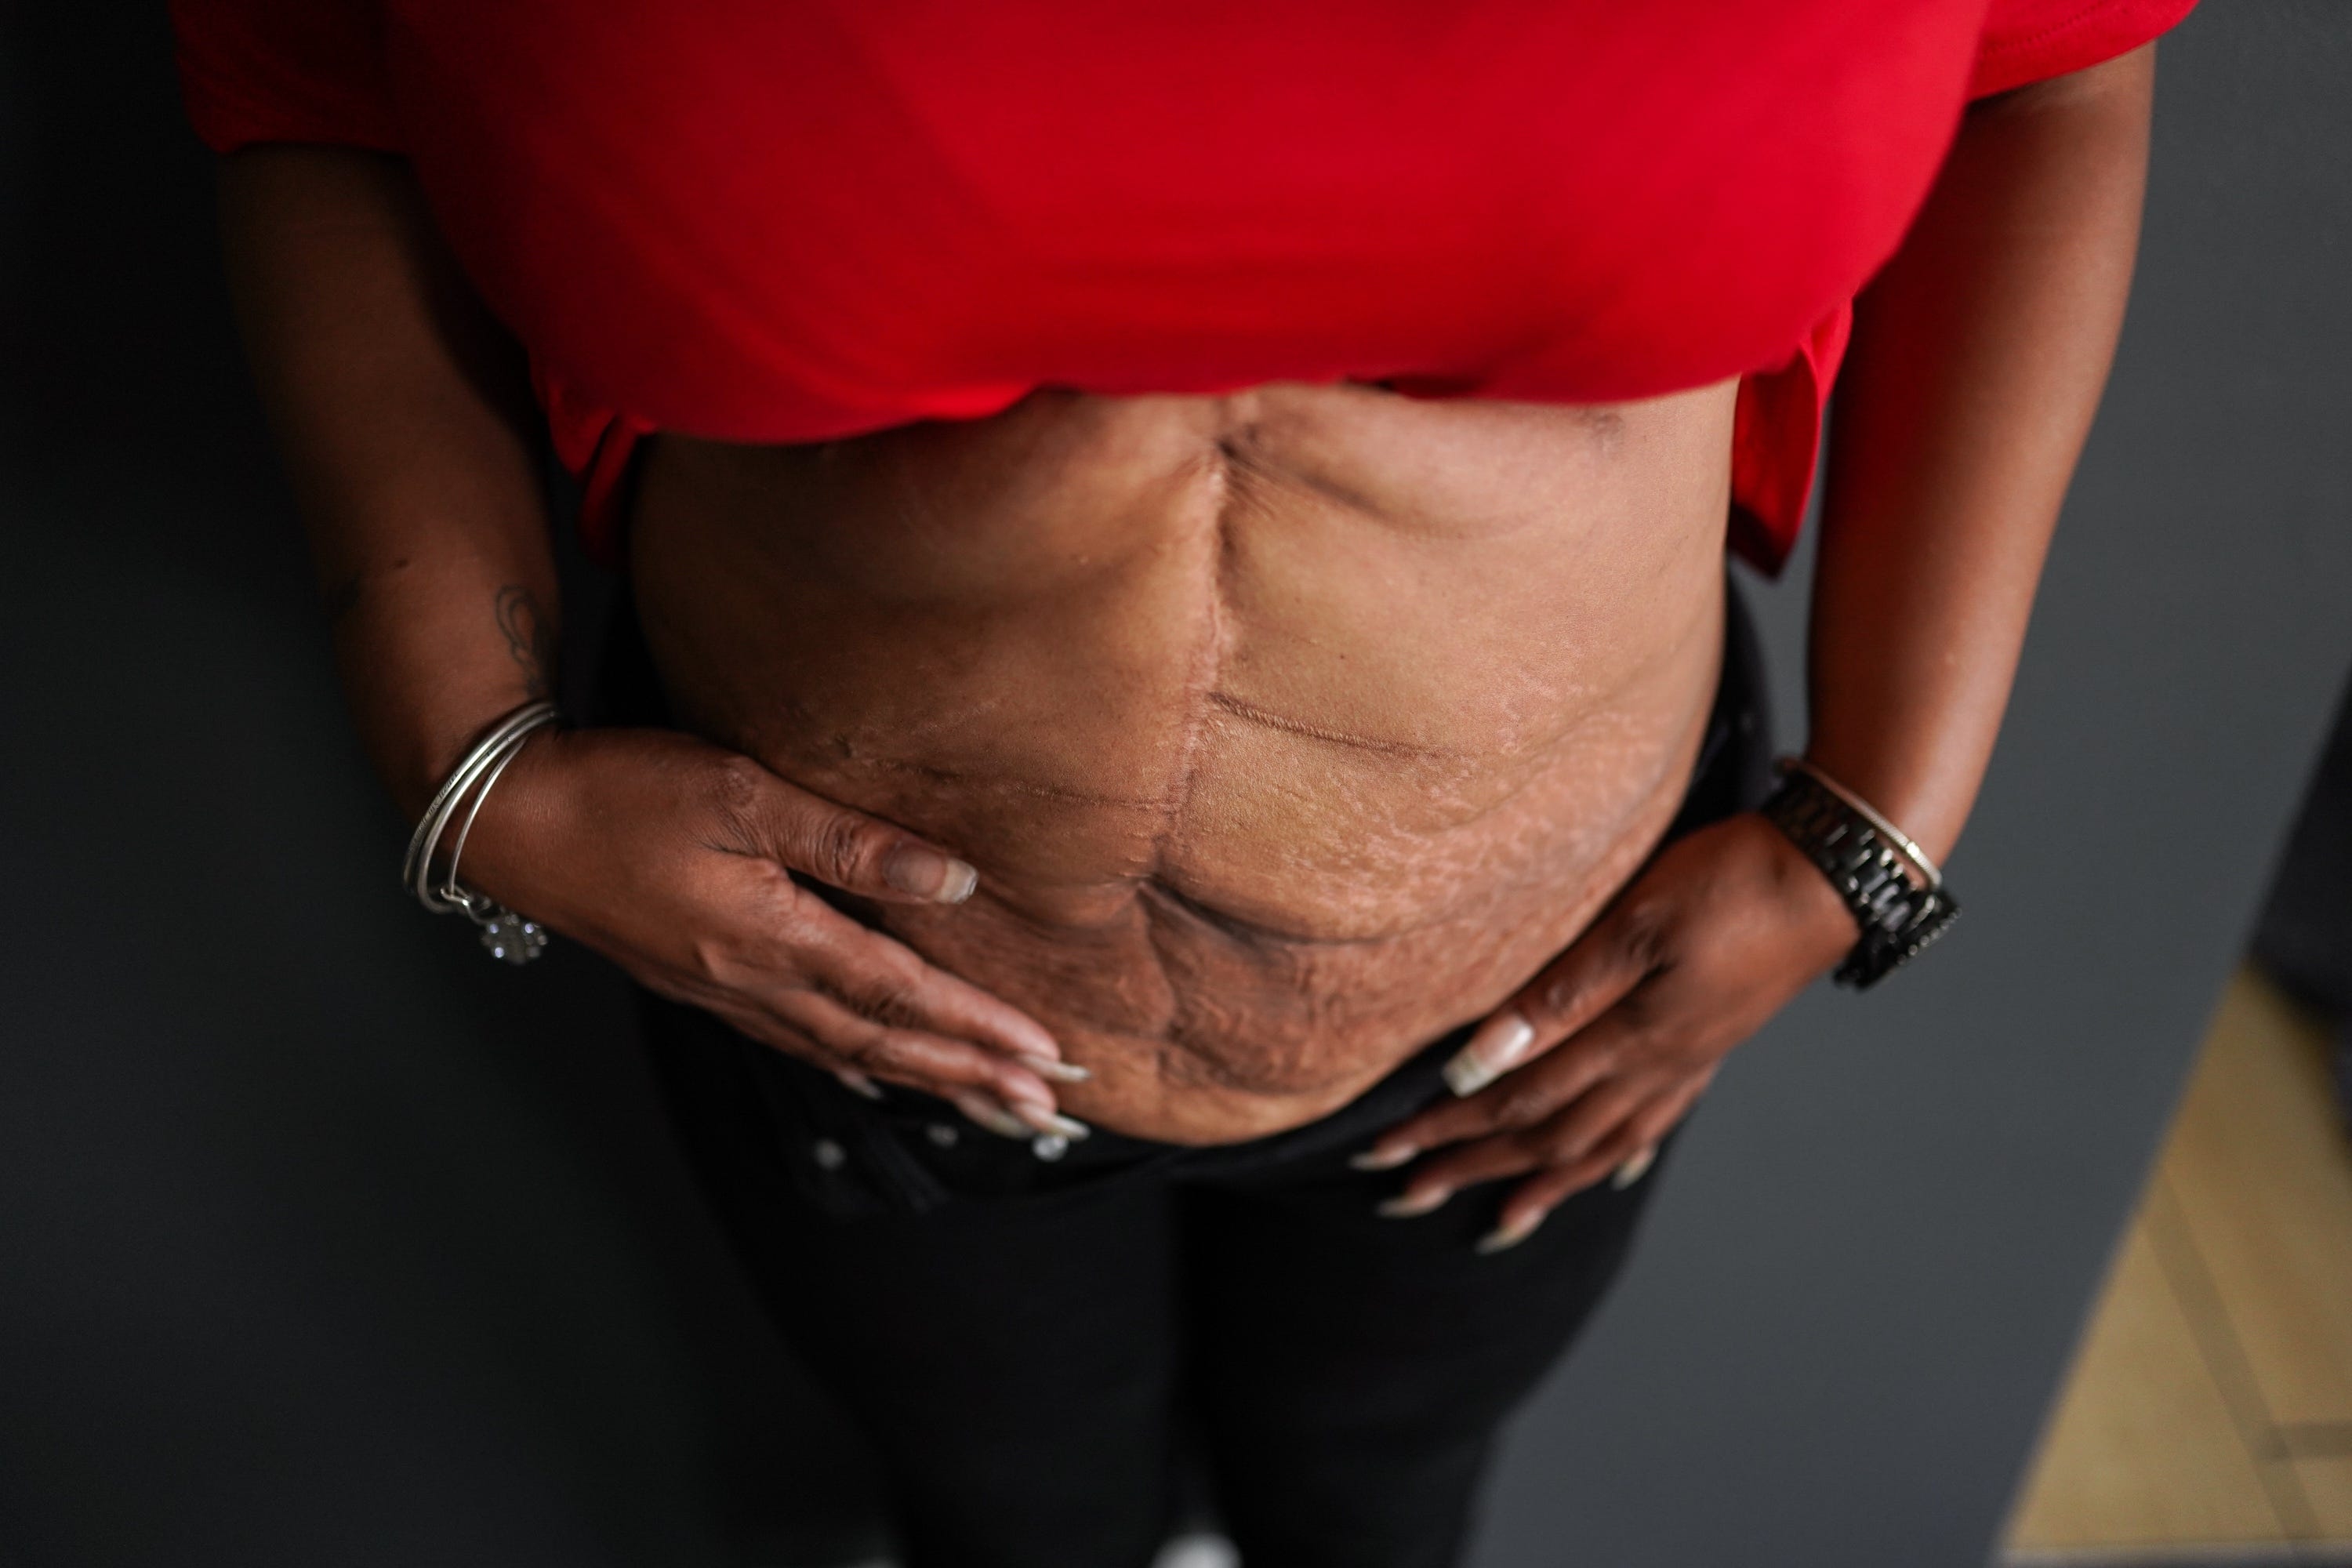 Detroit resident Nyosha Fowler was seriously injured in 2015 when Dr. Osakatukei Omulepu accidentally punctured her bowels during liposuction and injected fat into her sciatic nerve during a Brazilian butt lift in Florida. Fowler's stomach remains scarred.